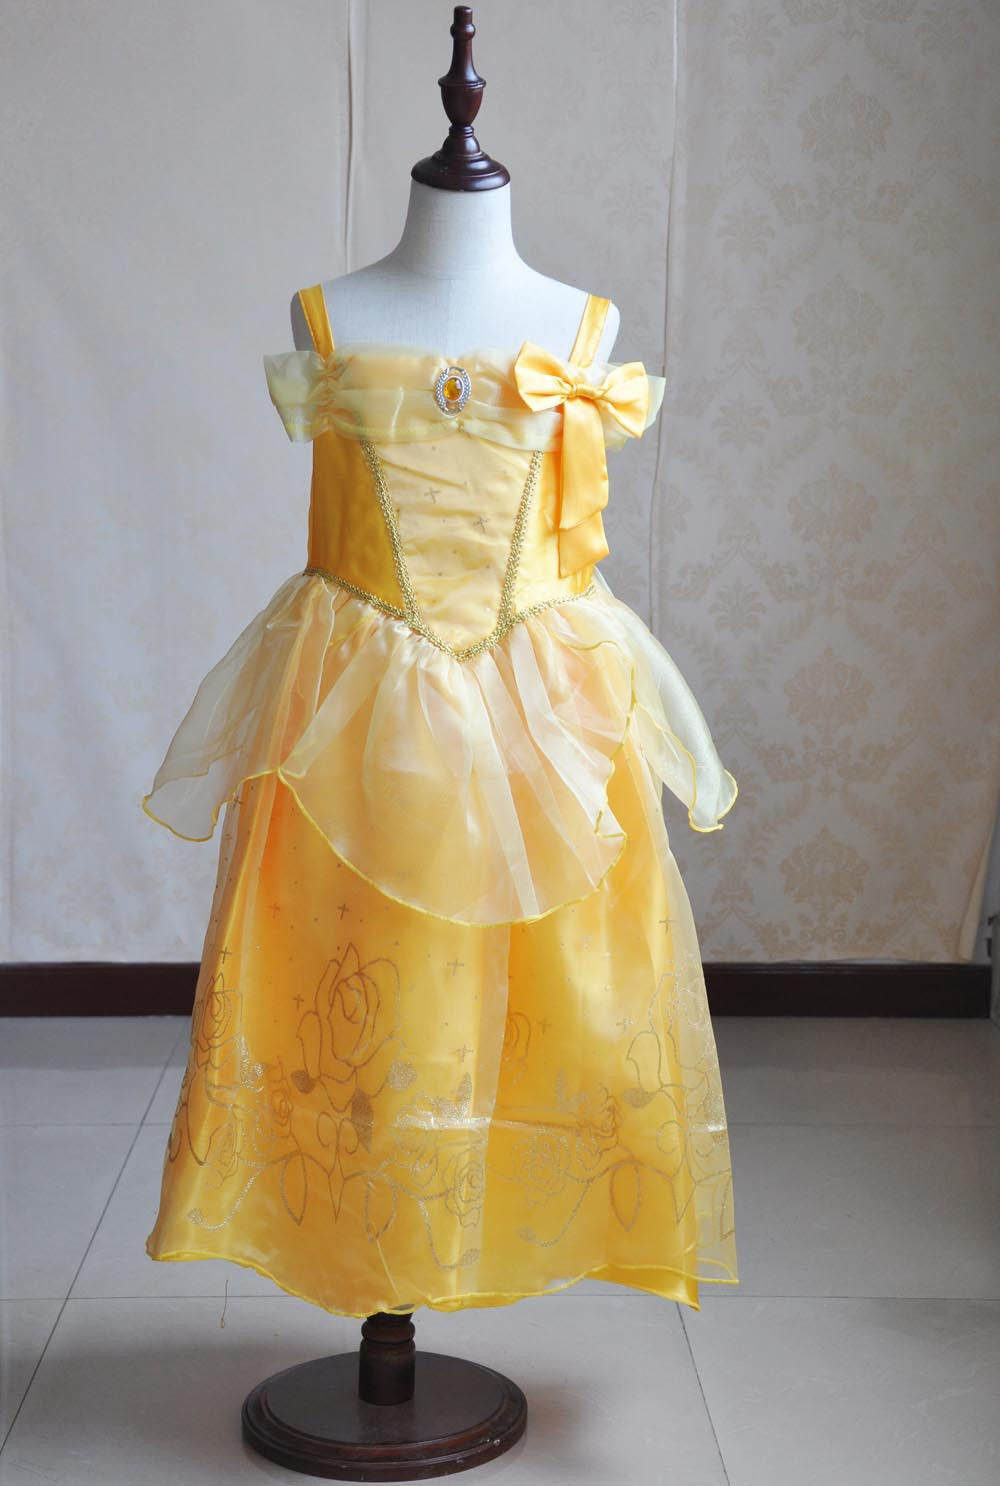 Fashion party dresses for little girls carnival kids ...